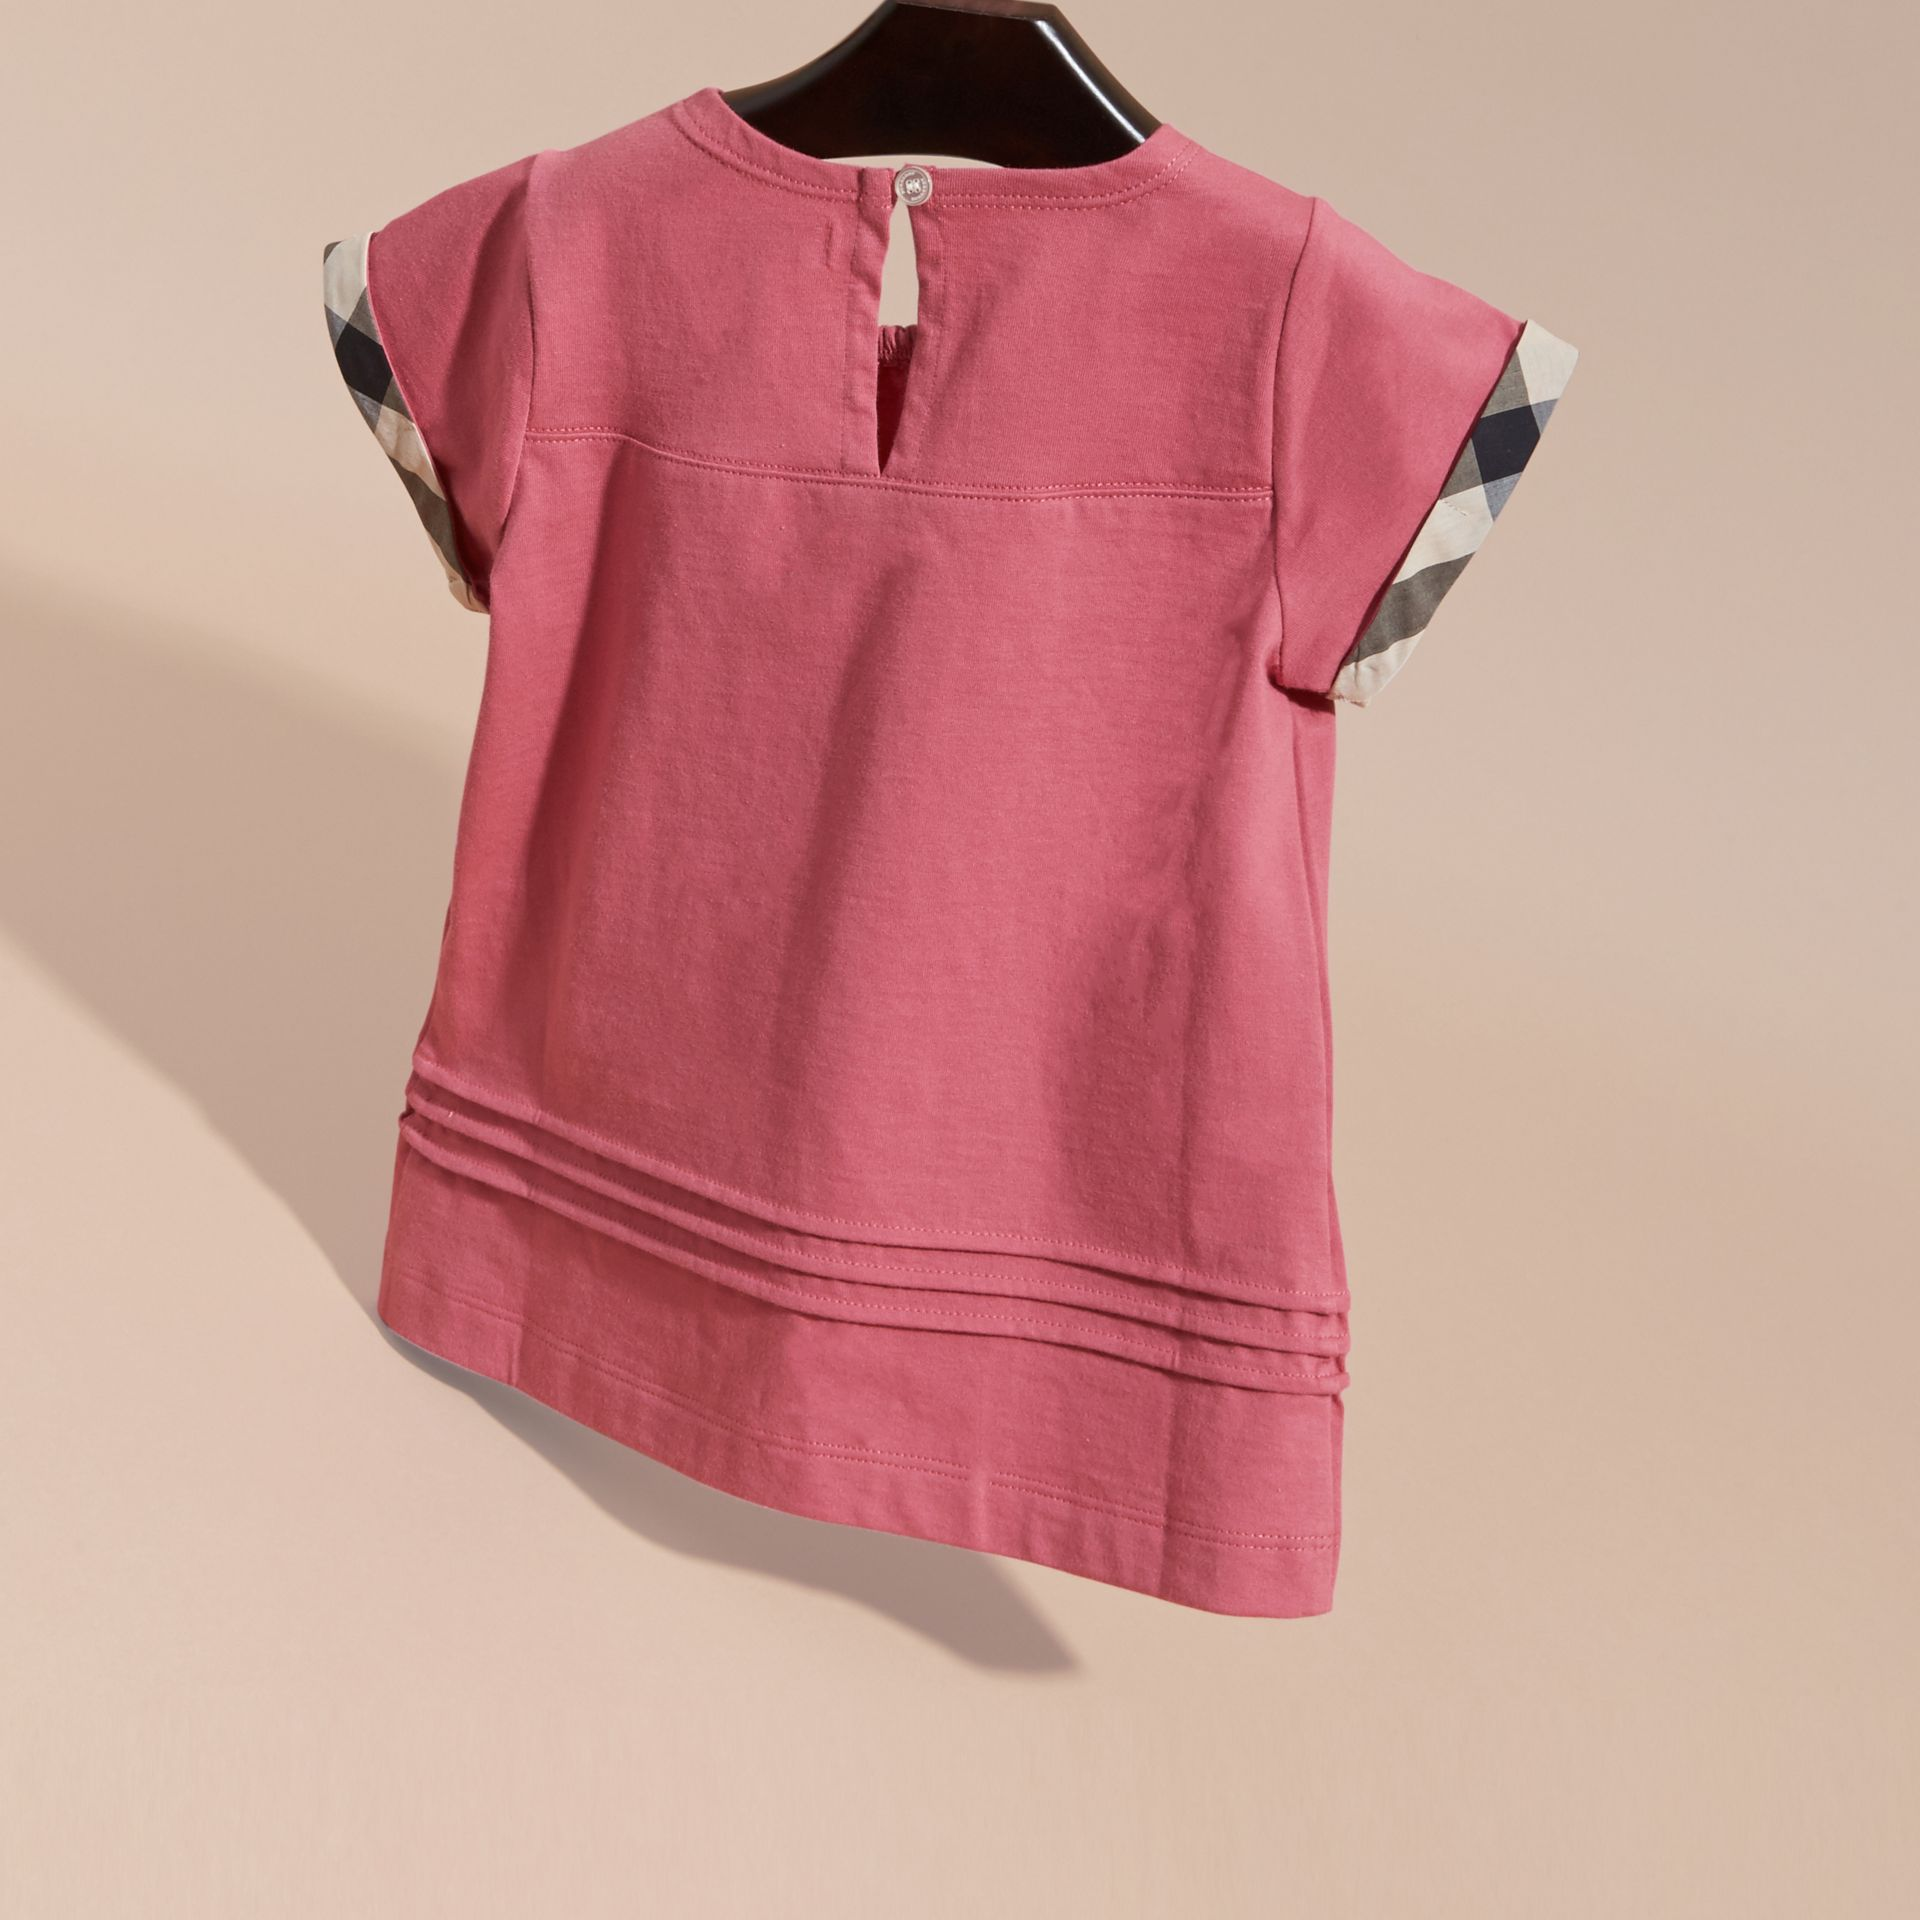 Pleat and Check Detail Cotton T-shirt Pink Azalea - gallery image 4